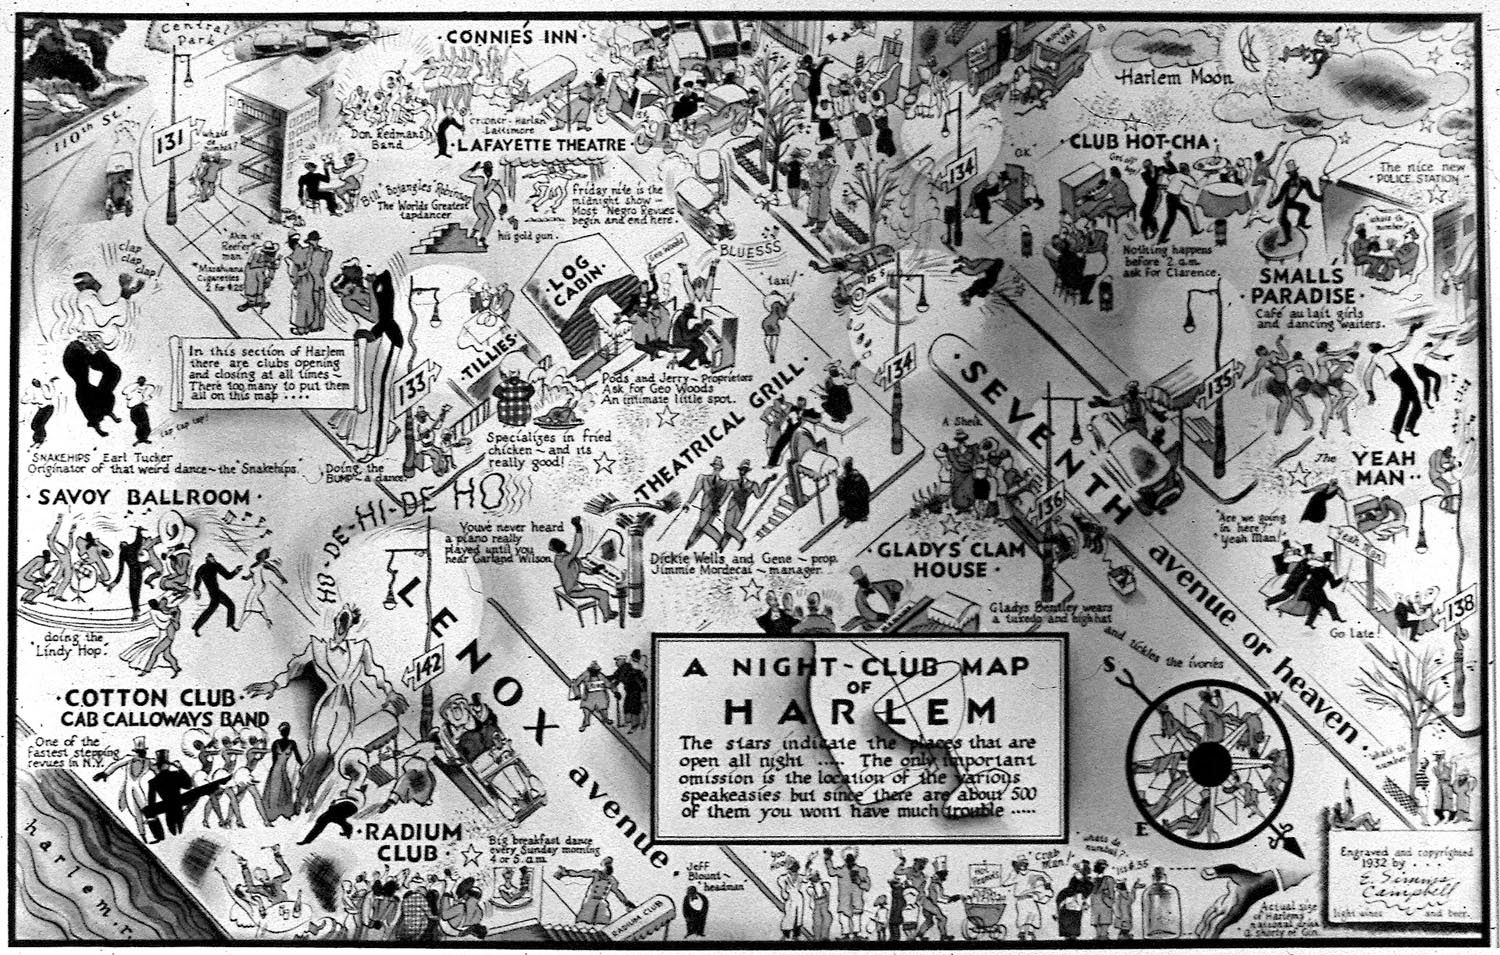 """E. Simms Campbell, """"A Night-Club Map of Harlem,"""" 1932"""